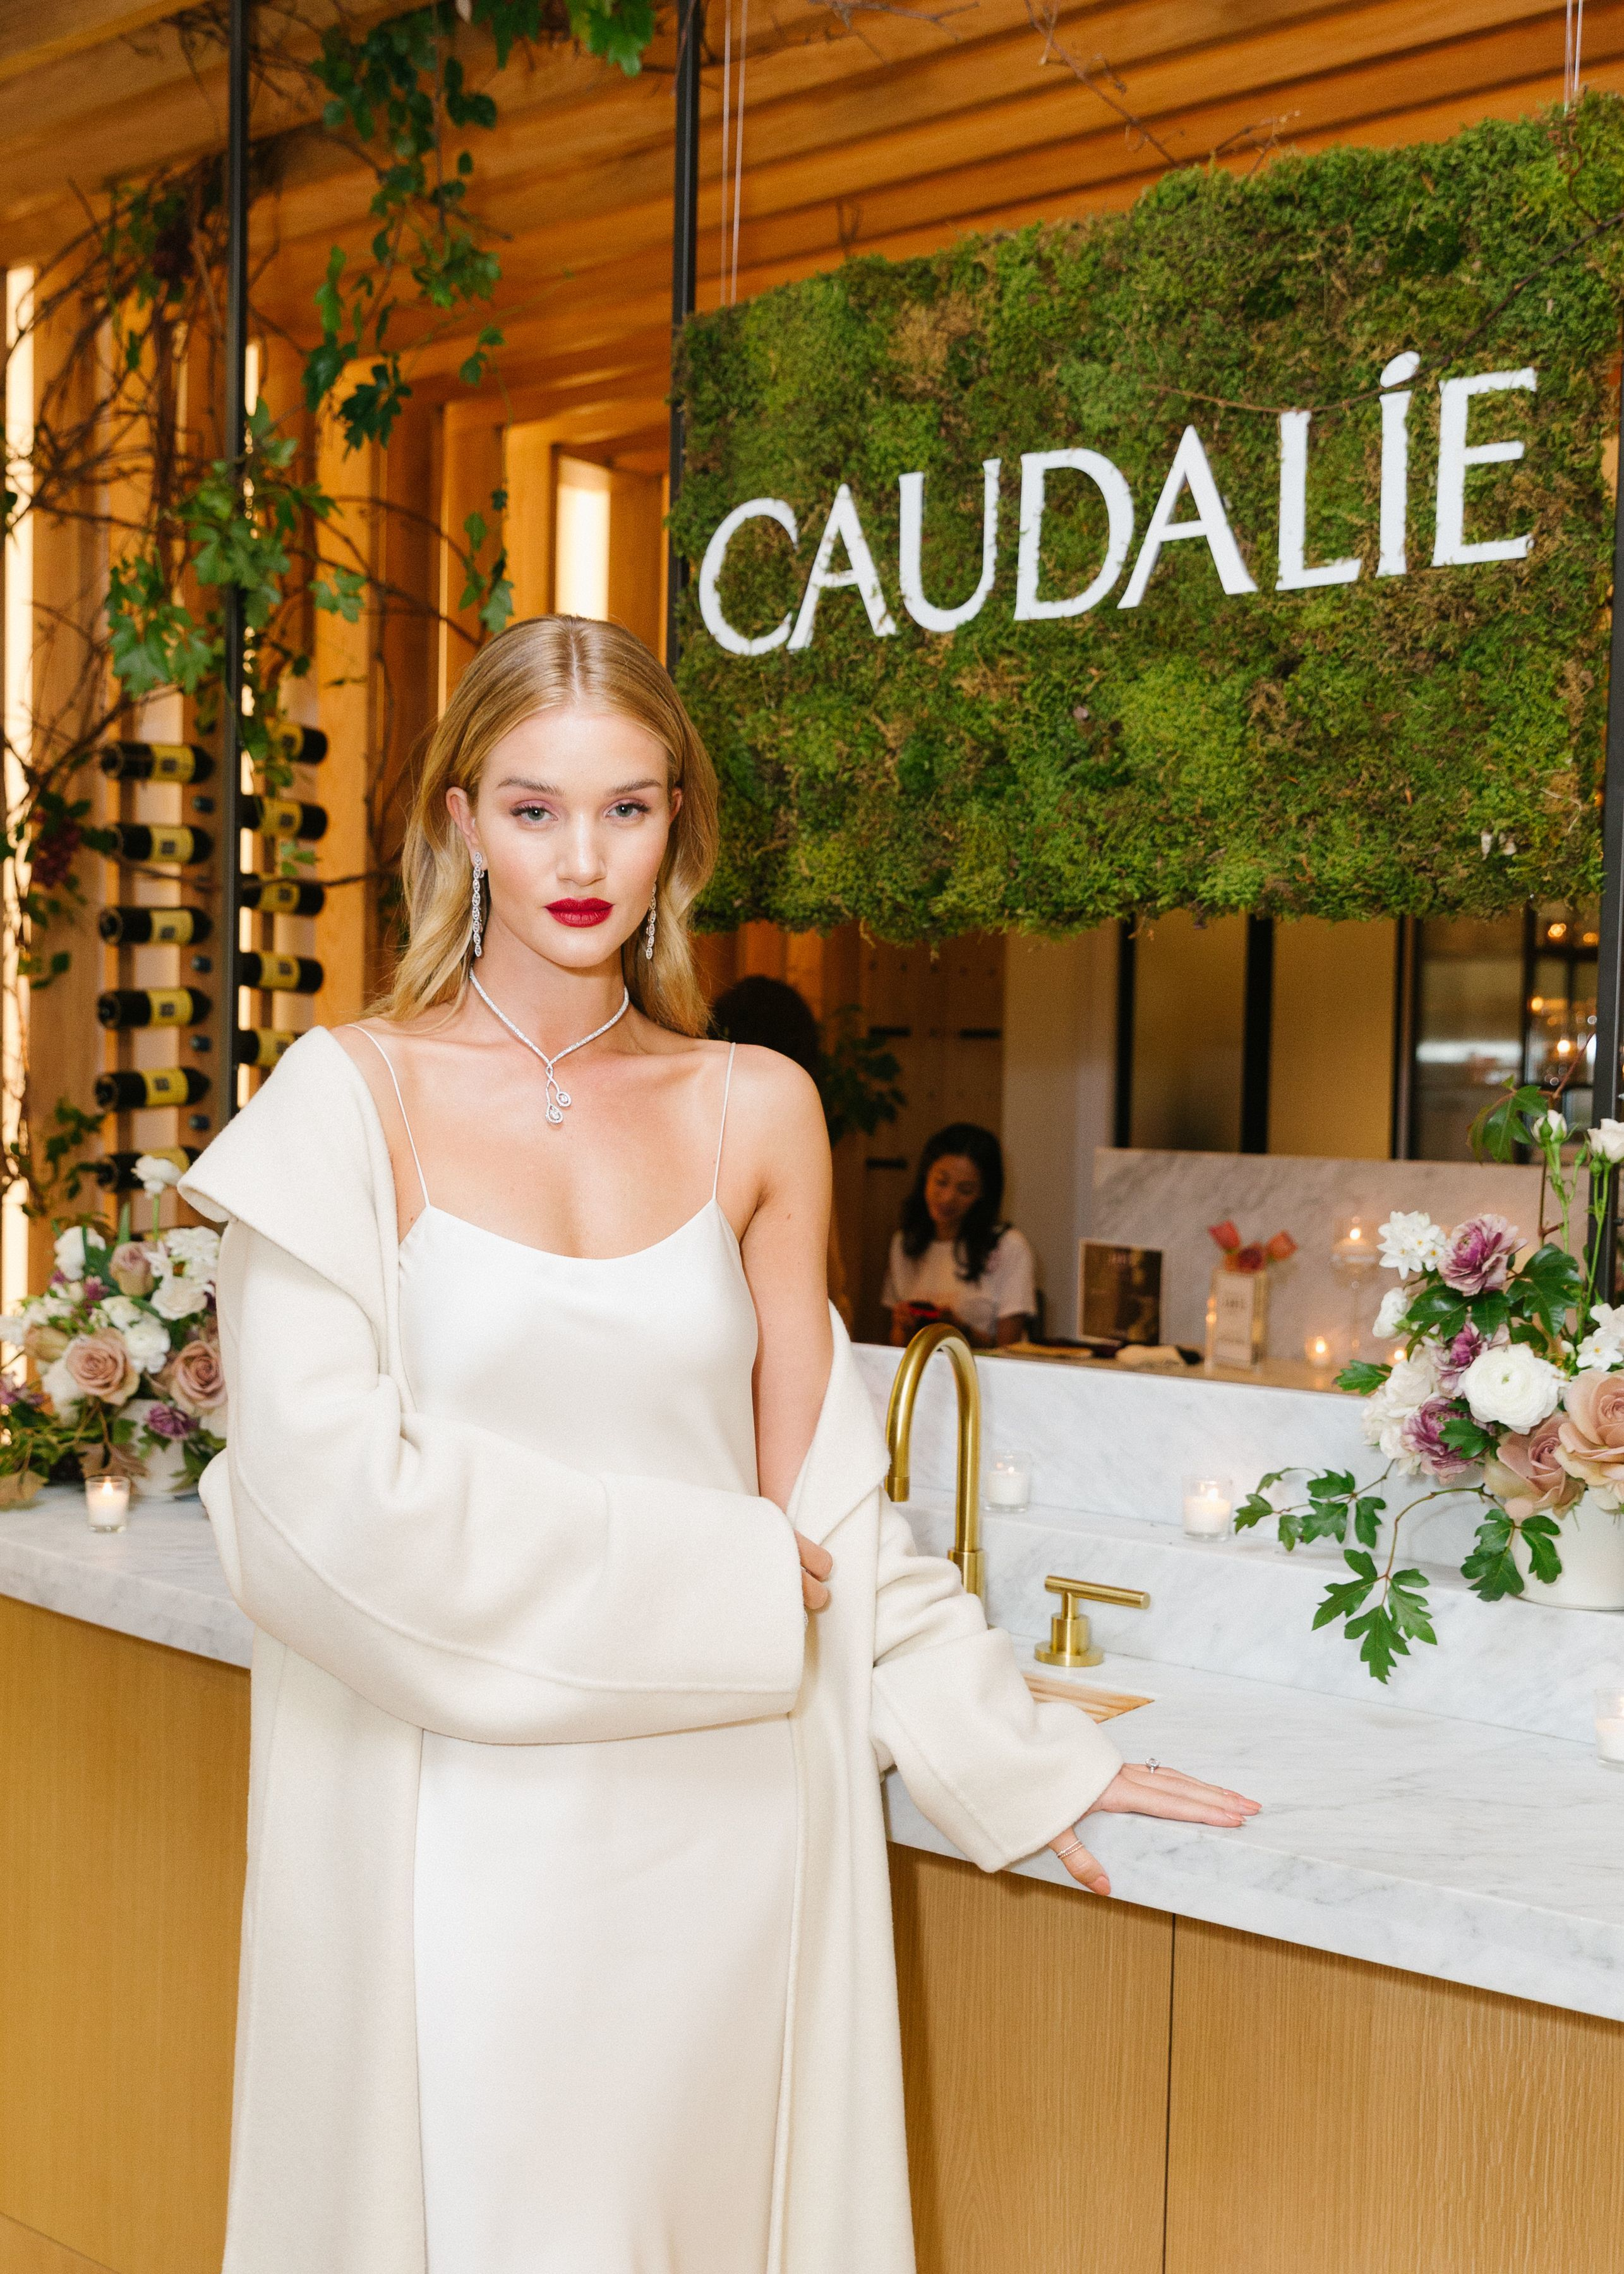 Rosie Huntington Whiteley attends the Caudalie Meatpacking VIP Opening in New York City on Dec. 6, 2017.